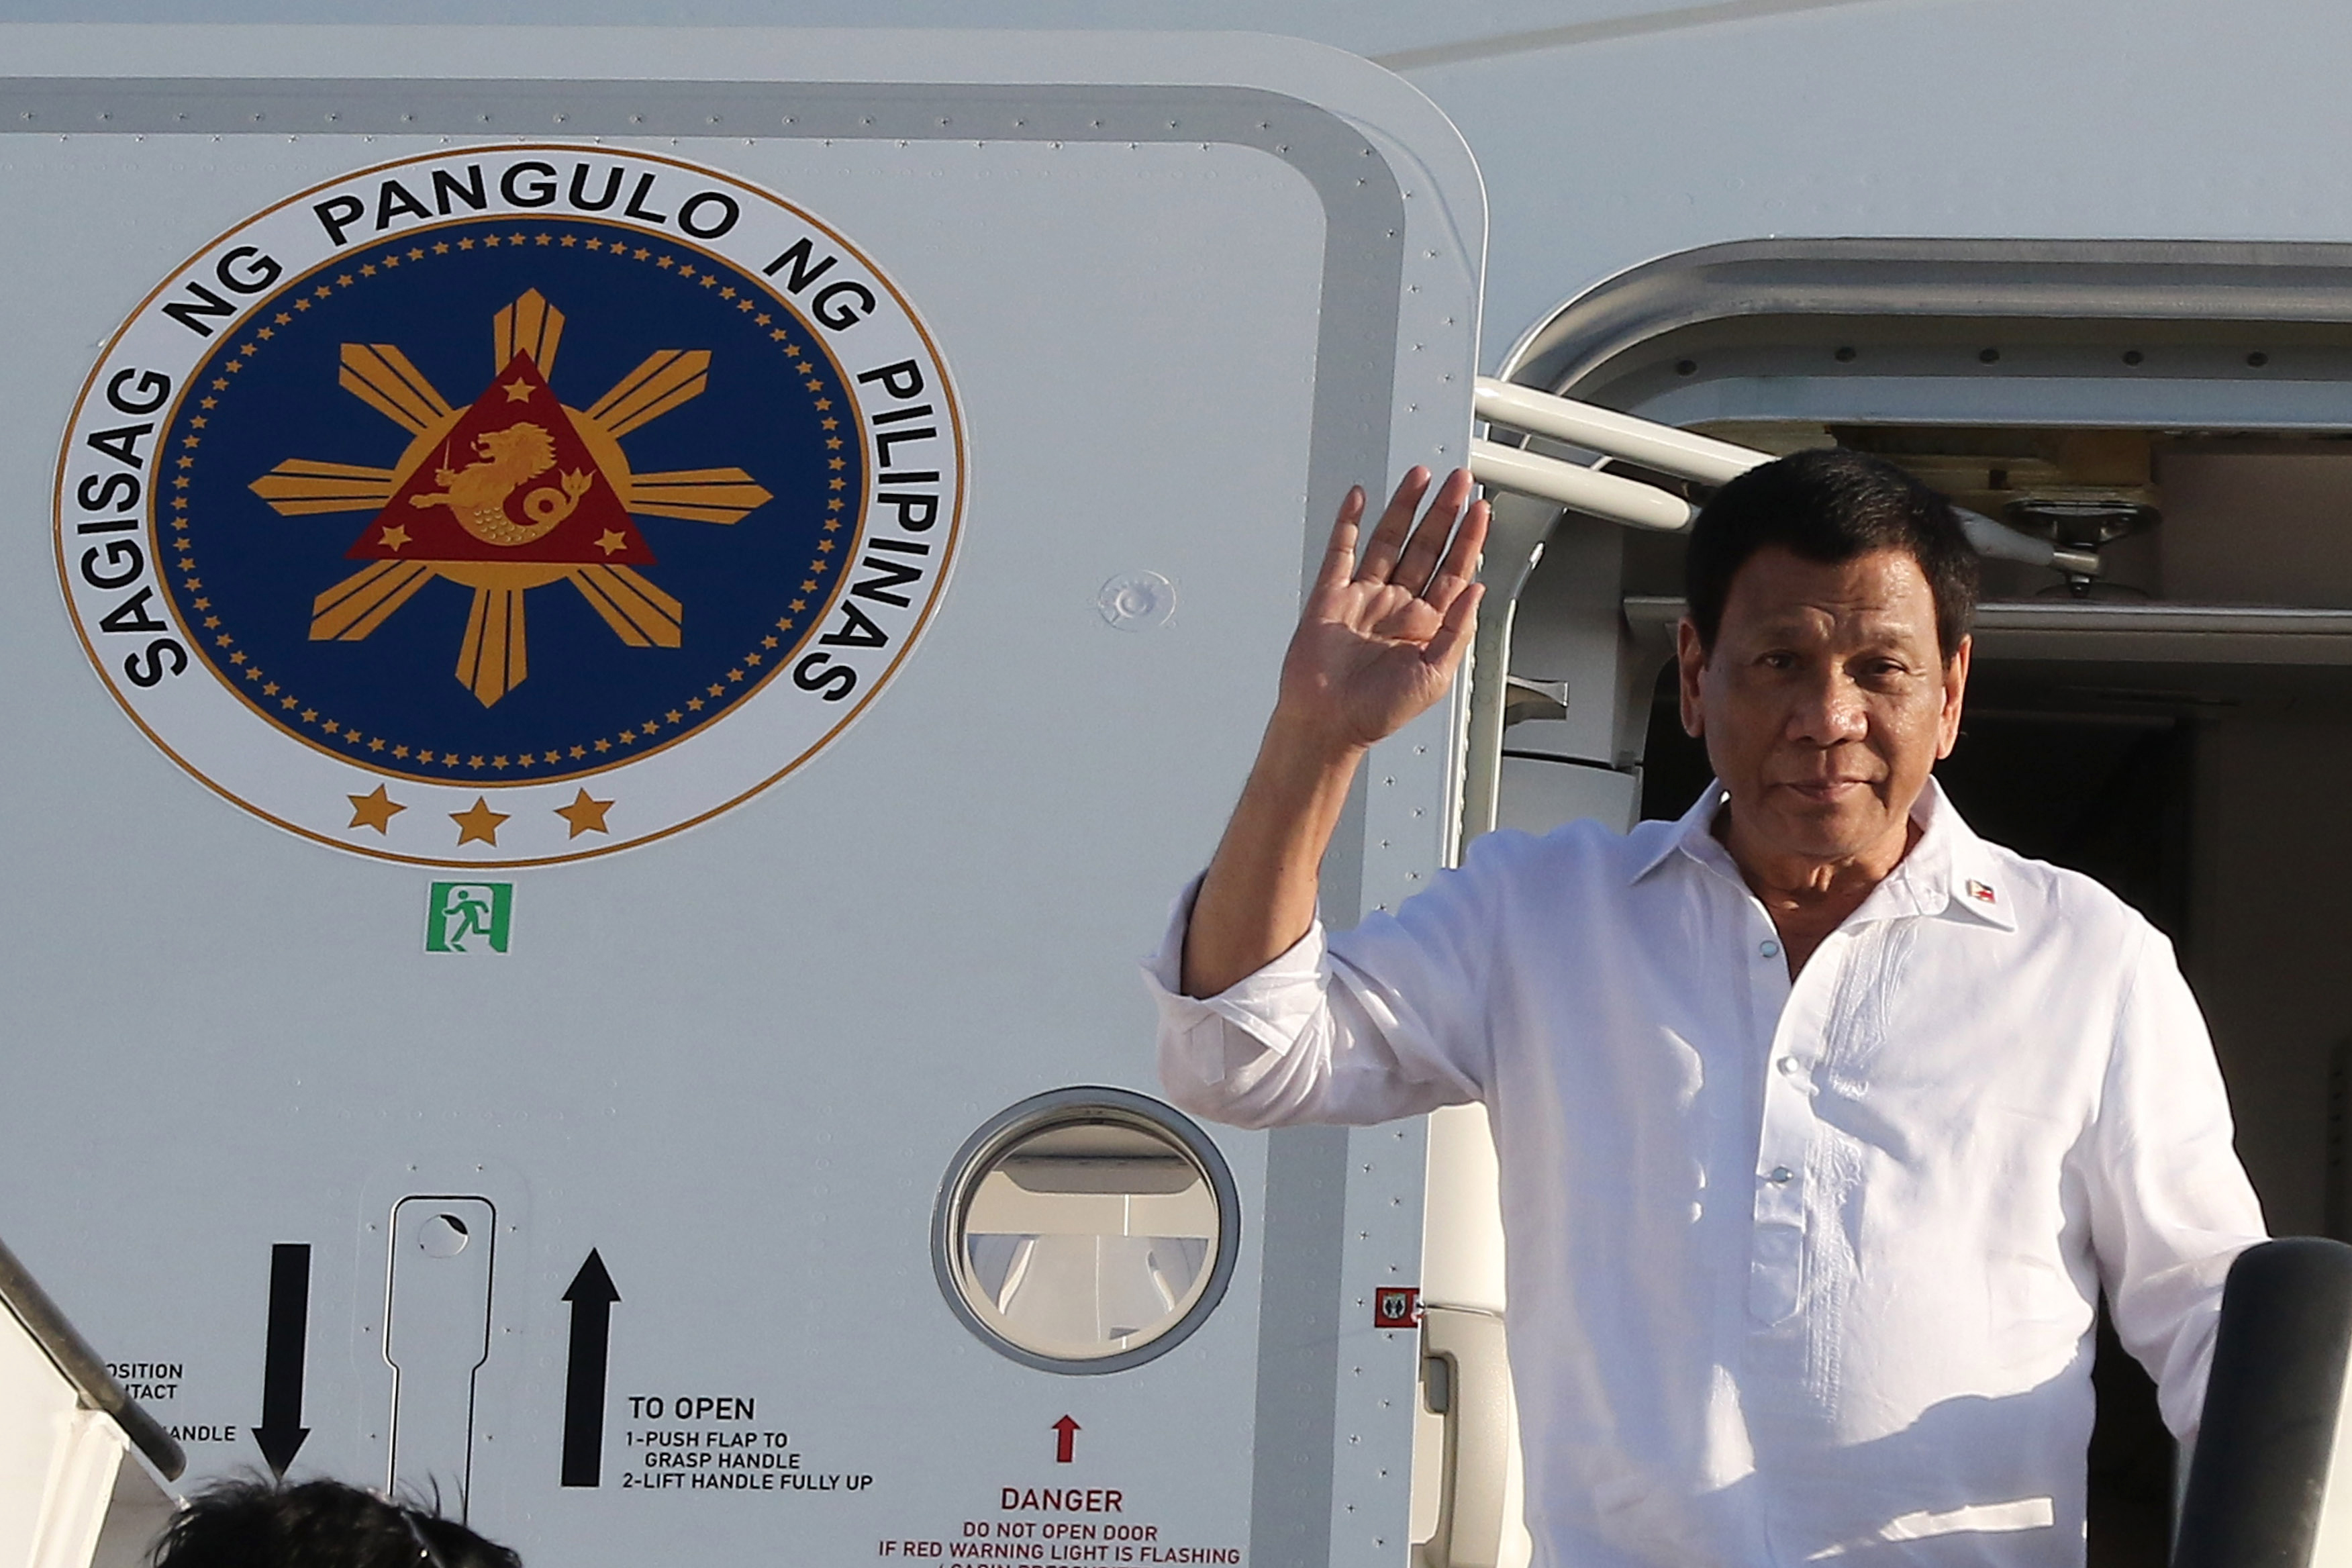 Philippine President Rodrigo Duterte waves upon his arrival in Amman, Jordan on Sept. 5, 2018.